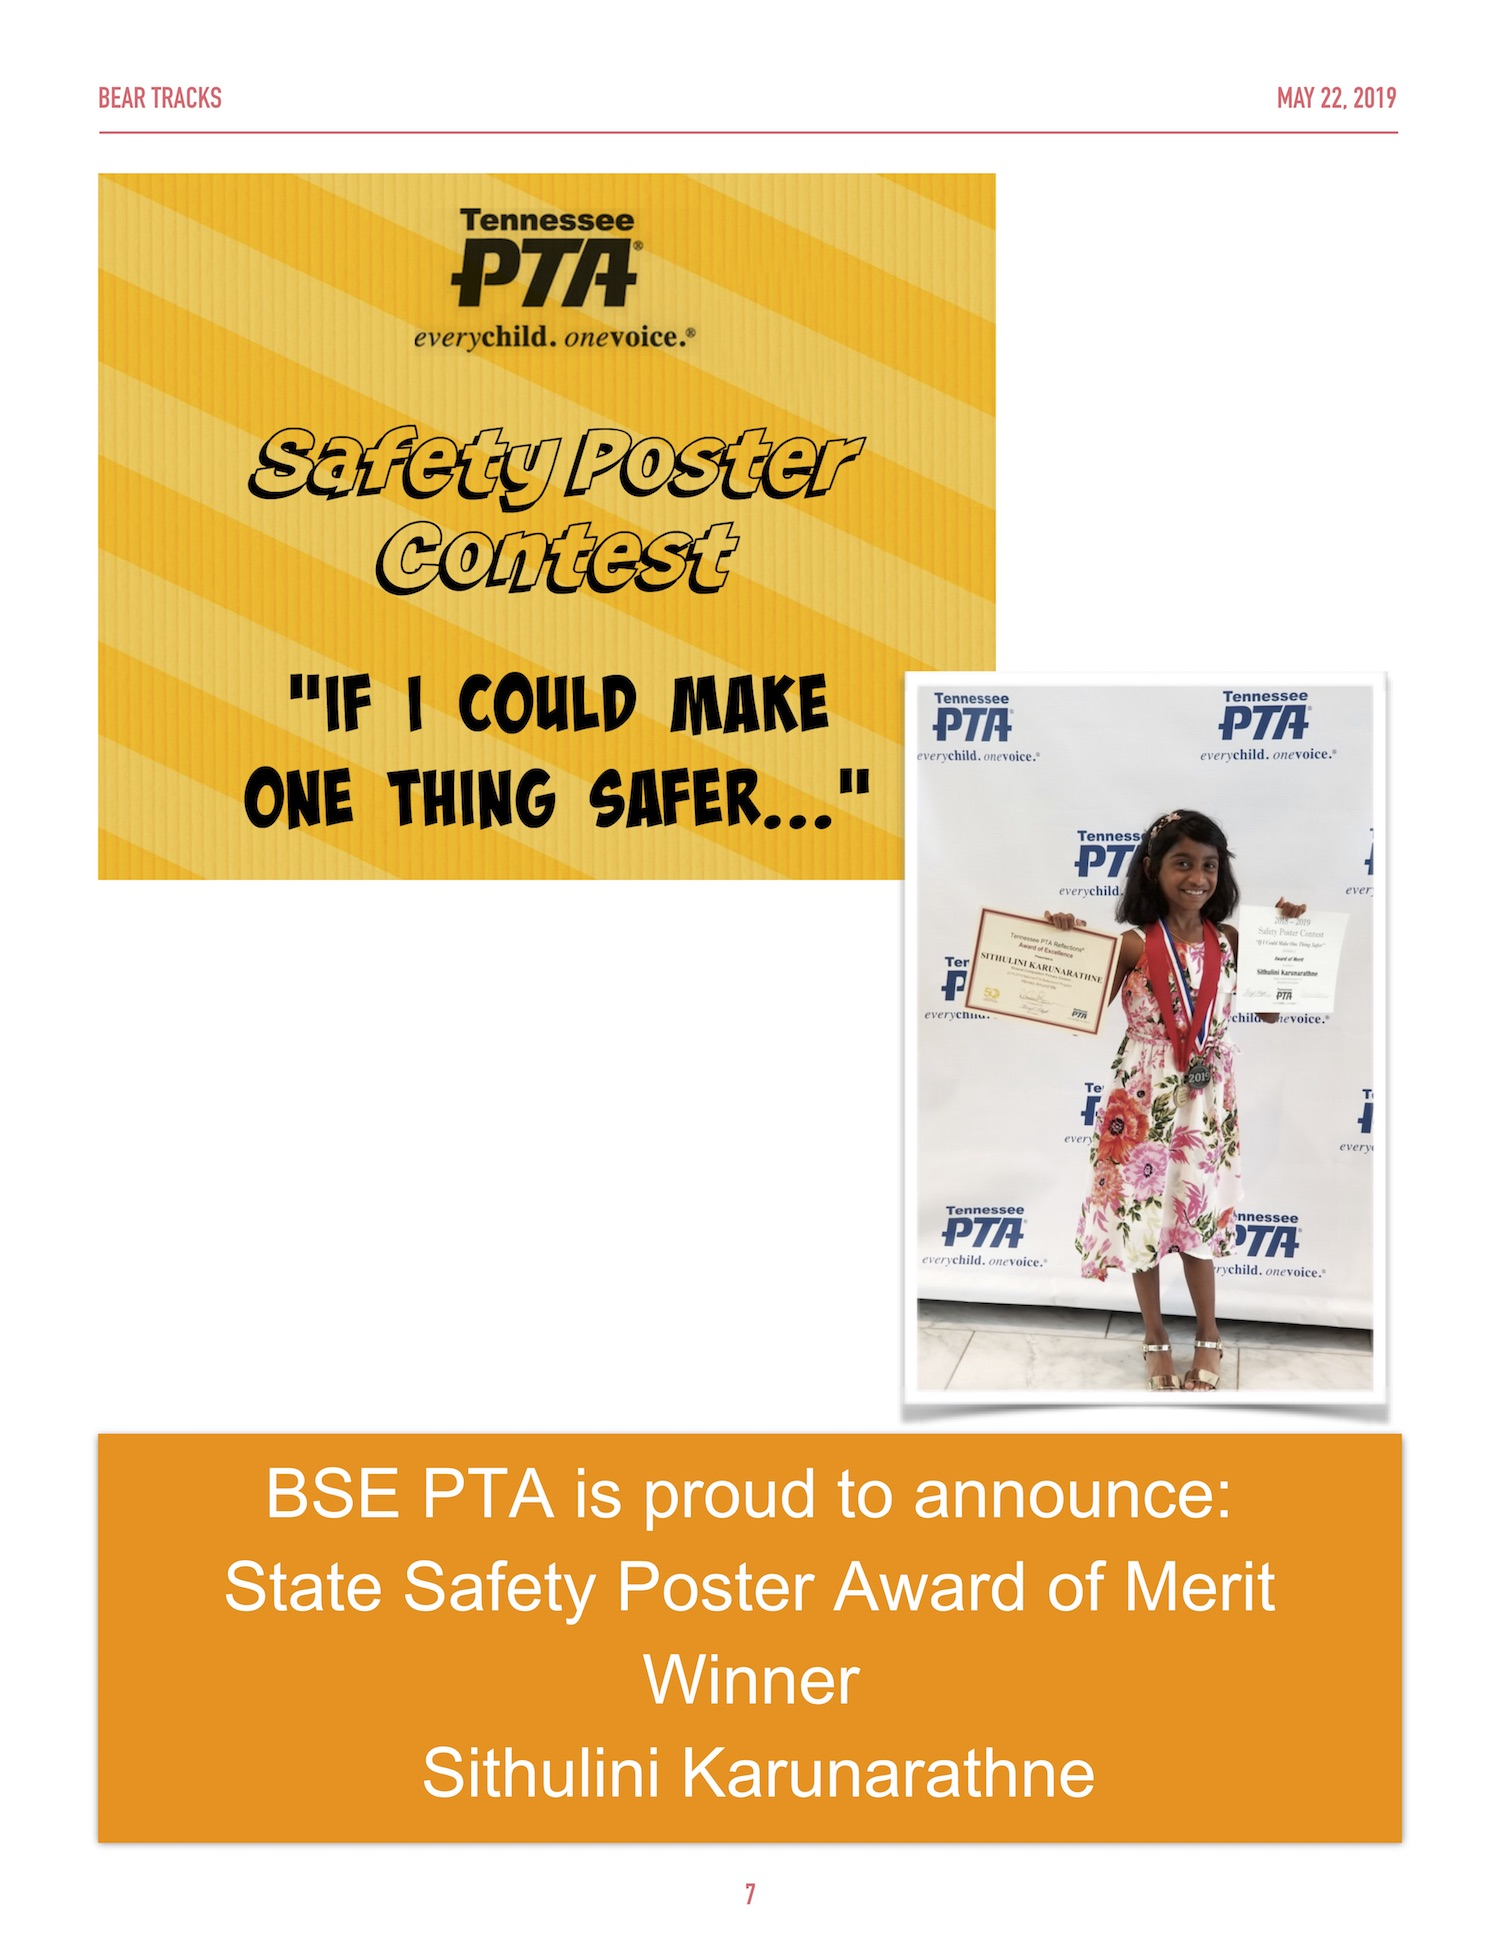 May 2019 BSE PTA Newsletter (dragged) 2.jpg